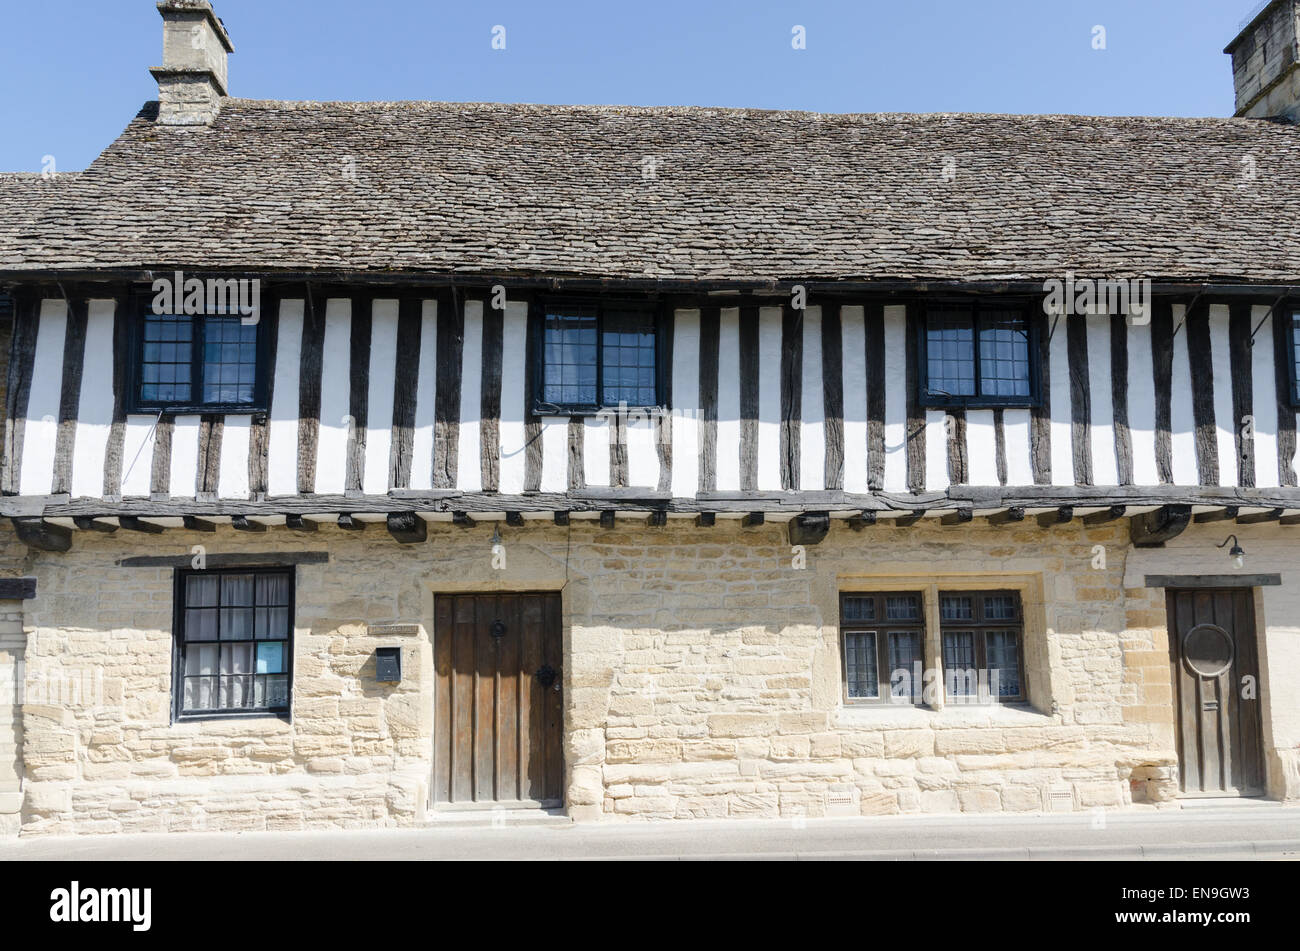 Half timber-framed houses in the Cotswold town of Northleach - Stock Image